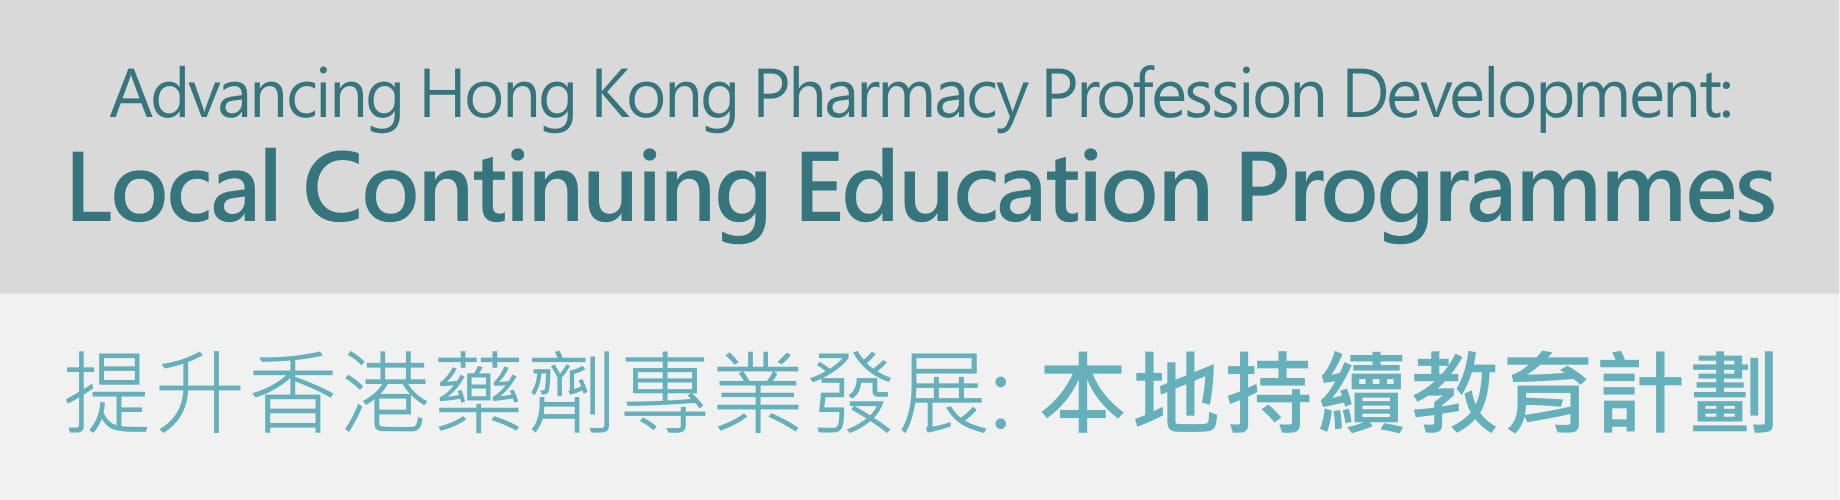 Advancing Hong Kong Pharmacy Profession Development – Local Continuing Education Programme